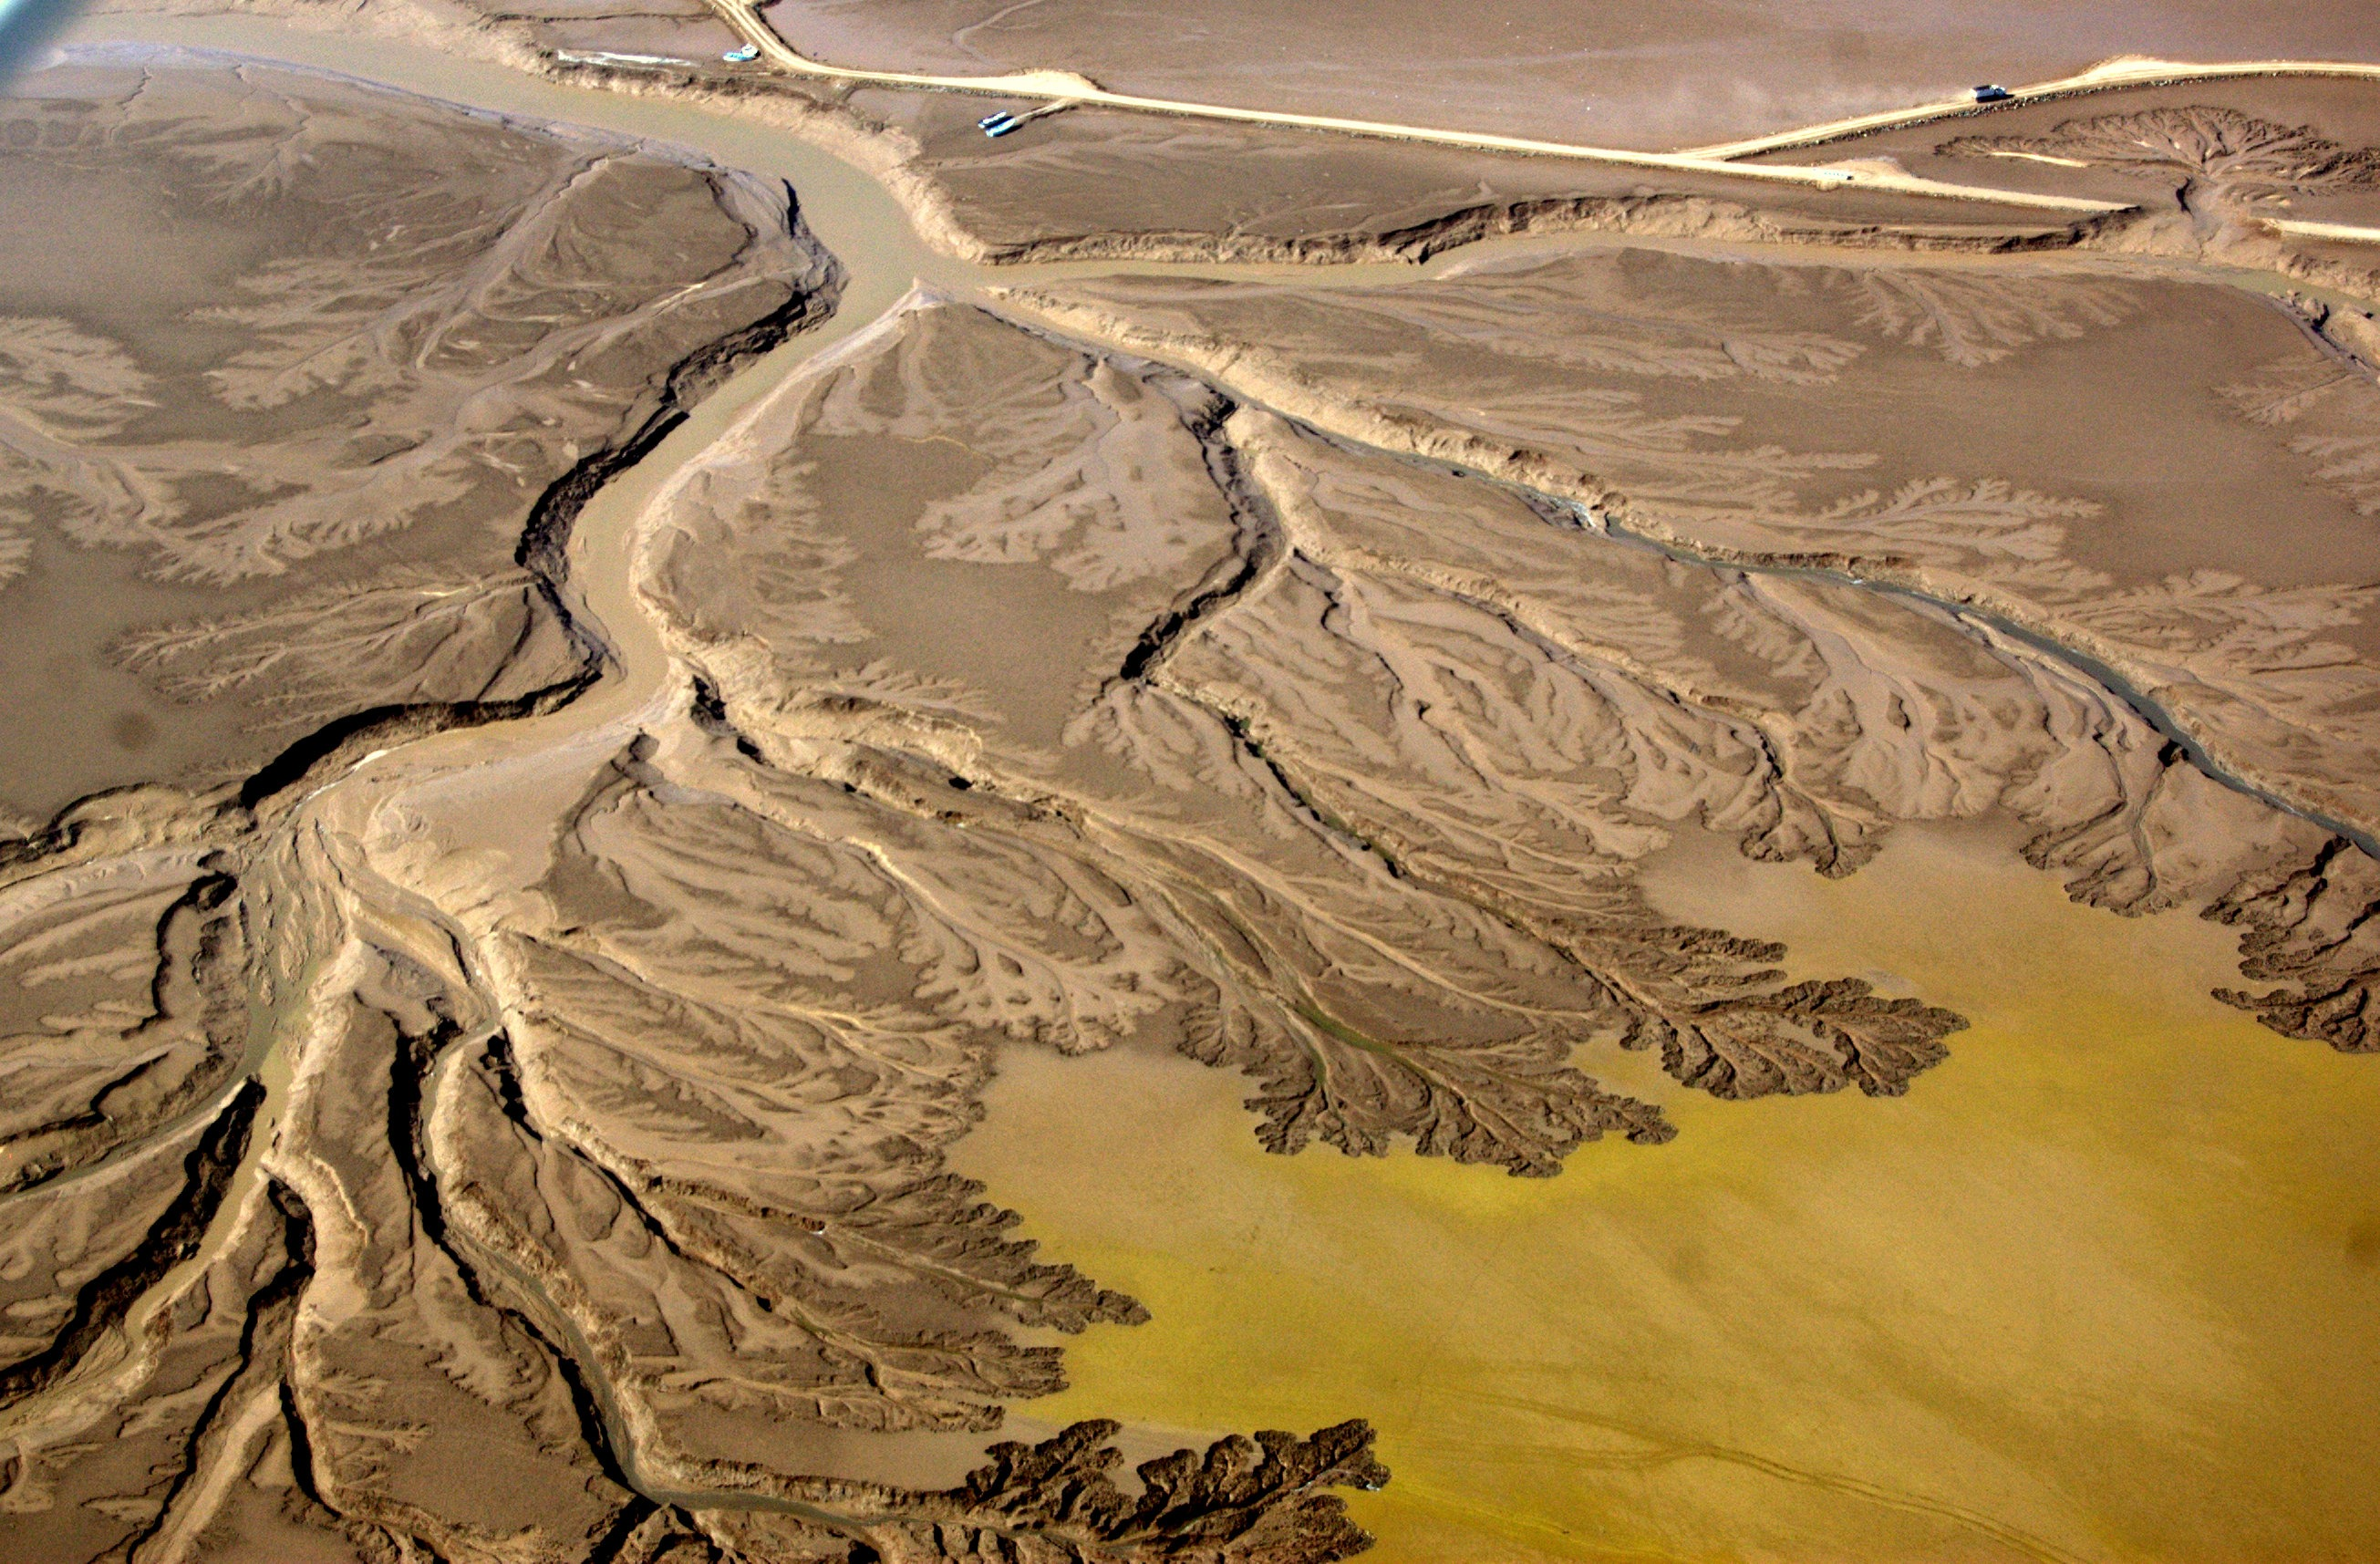 Rowene's Father Predicted the Colorado River Would Dry Up. He was Right.